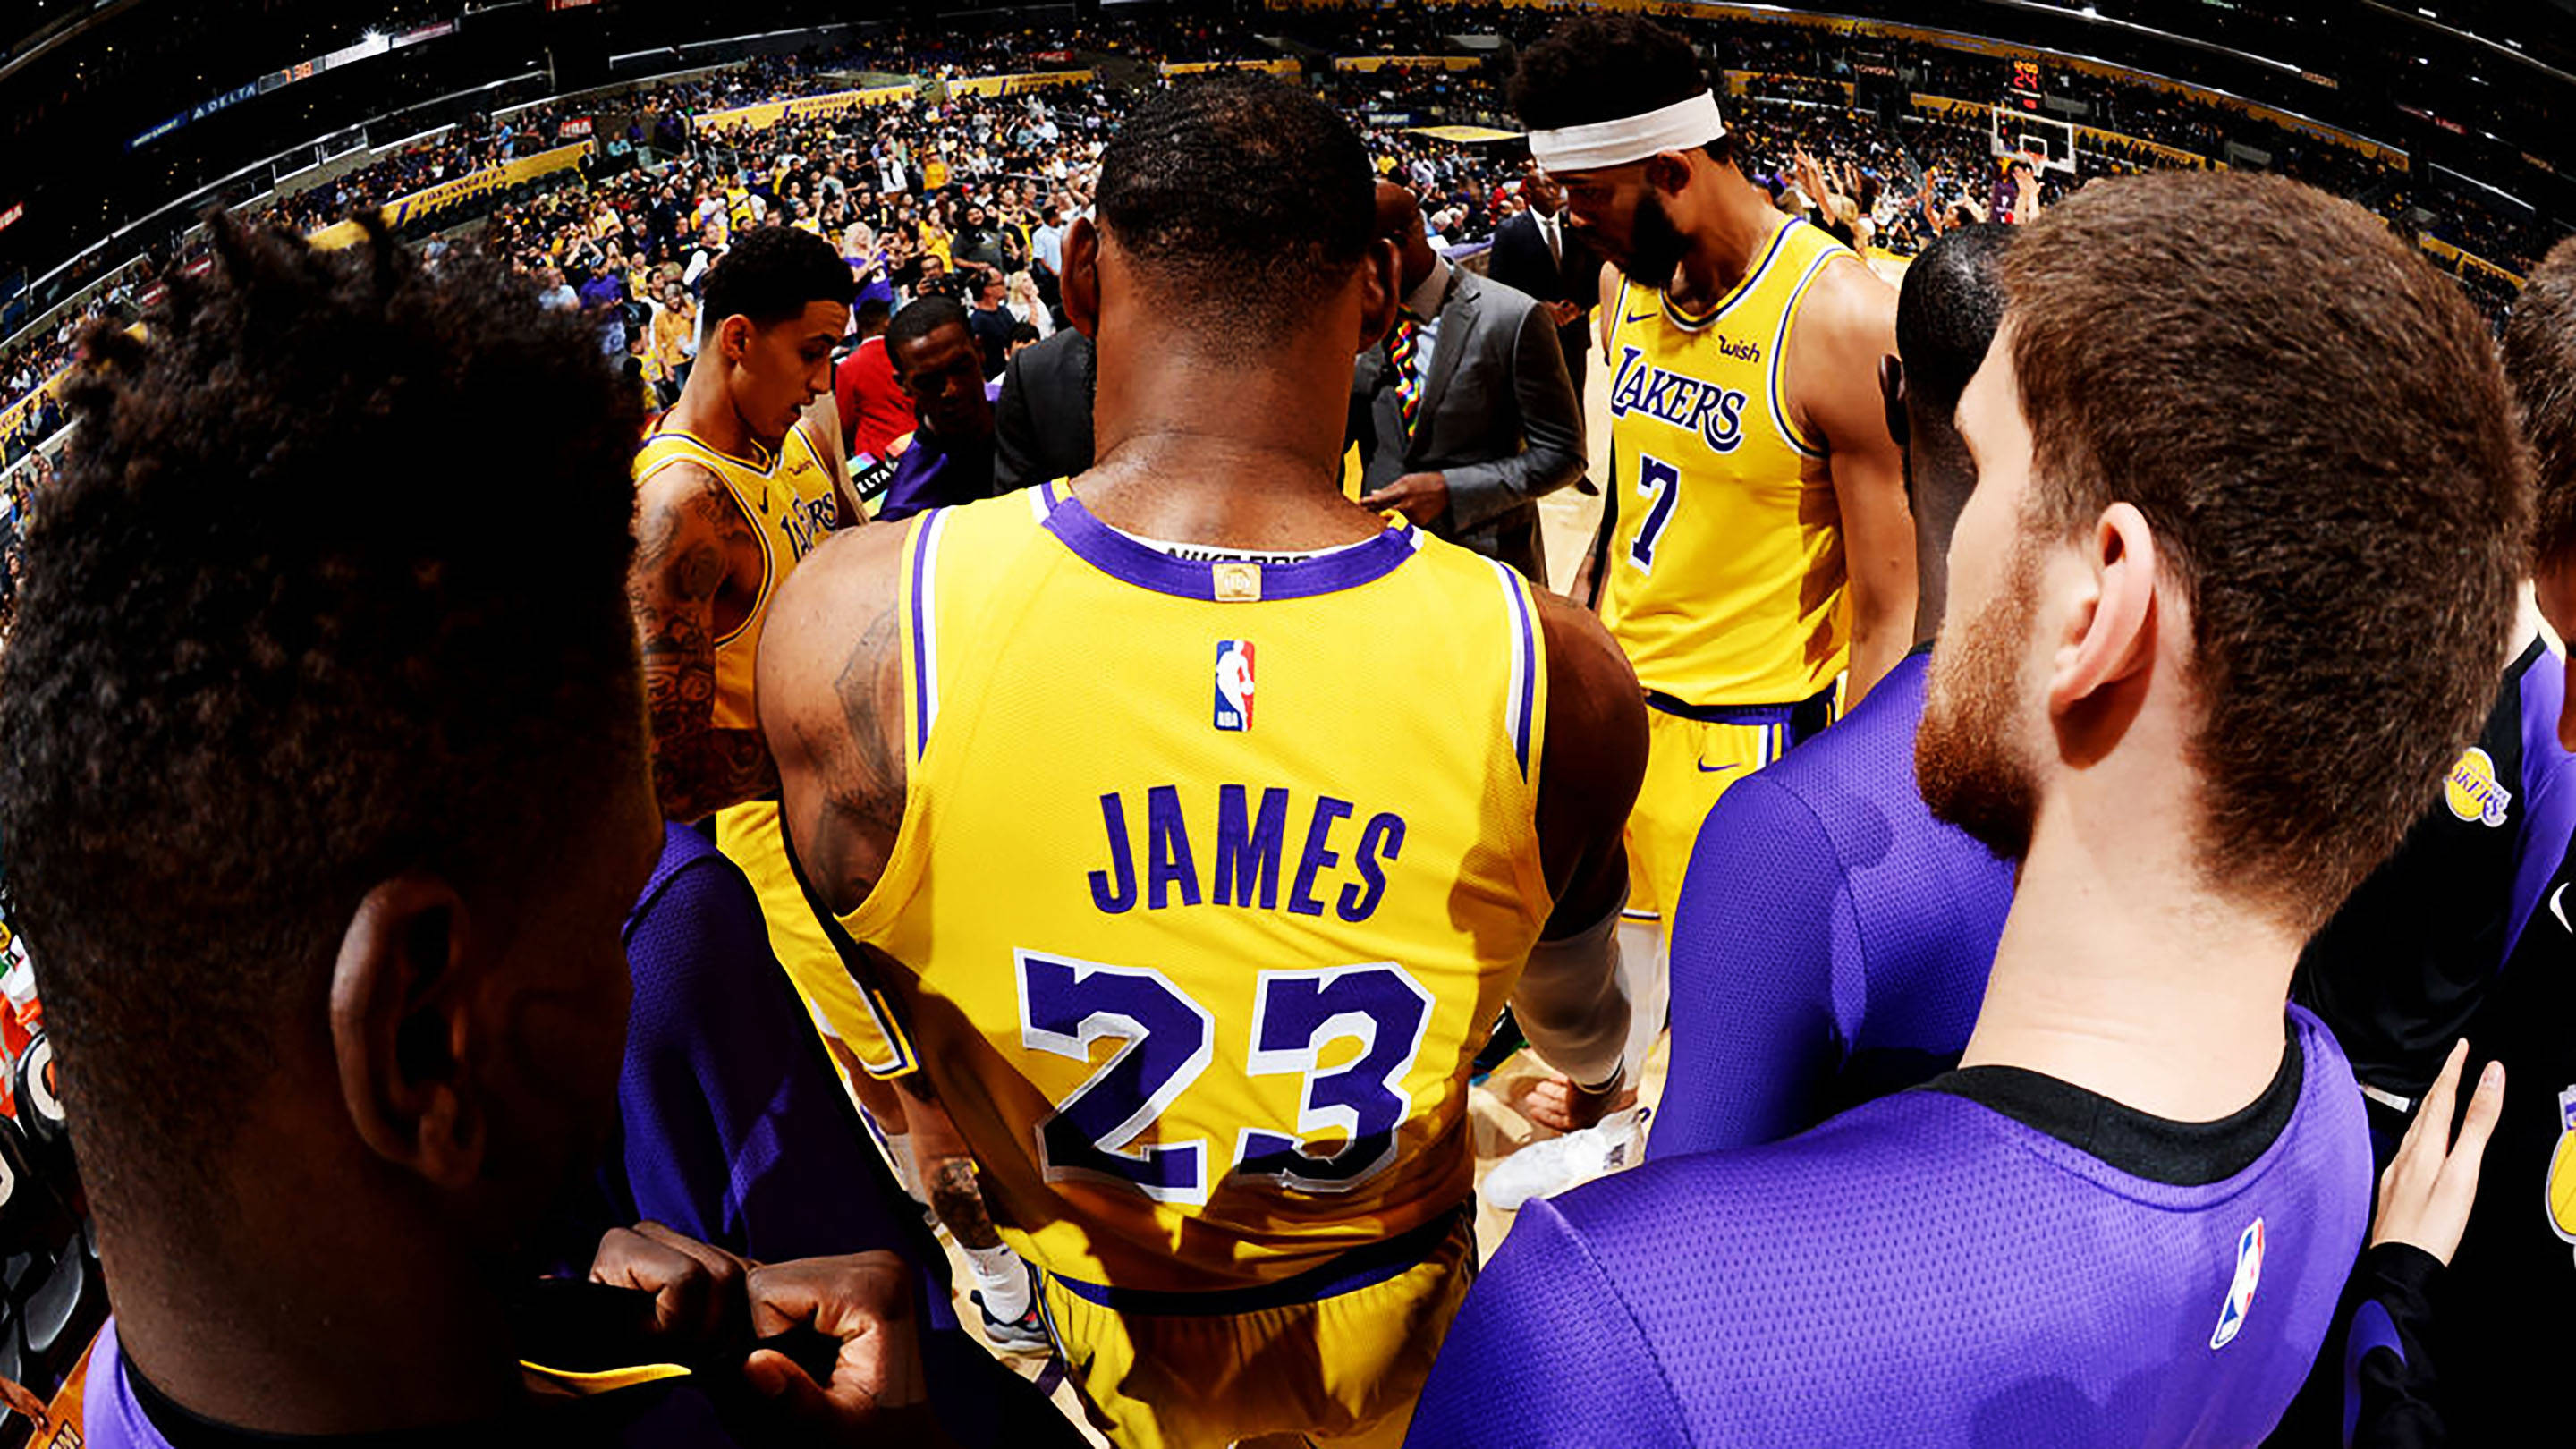 LeBron James and the NBA's Los Angeles Lakers